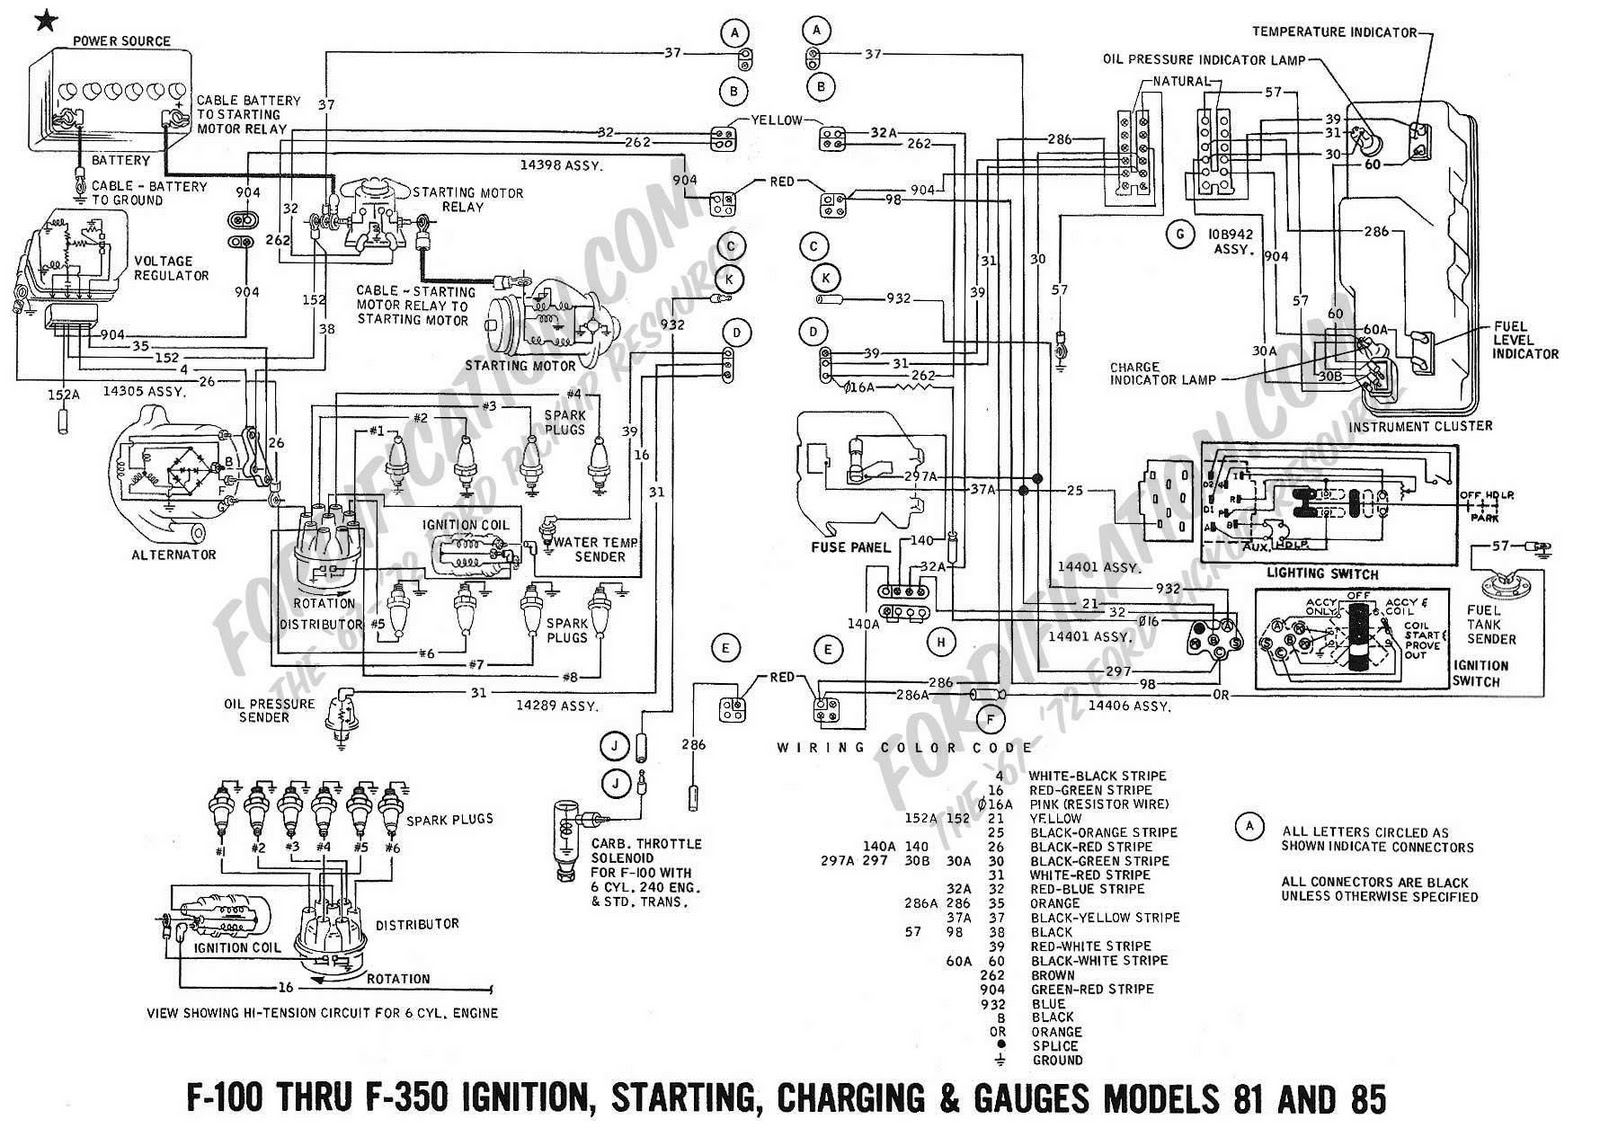 1969 ford f100-f350 ignition, starting, charging, and ... ford f700 wiring diagram 1969 #10